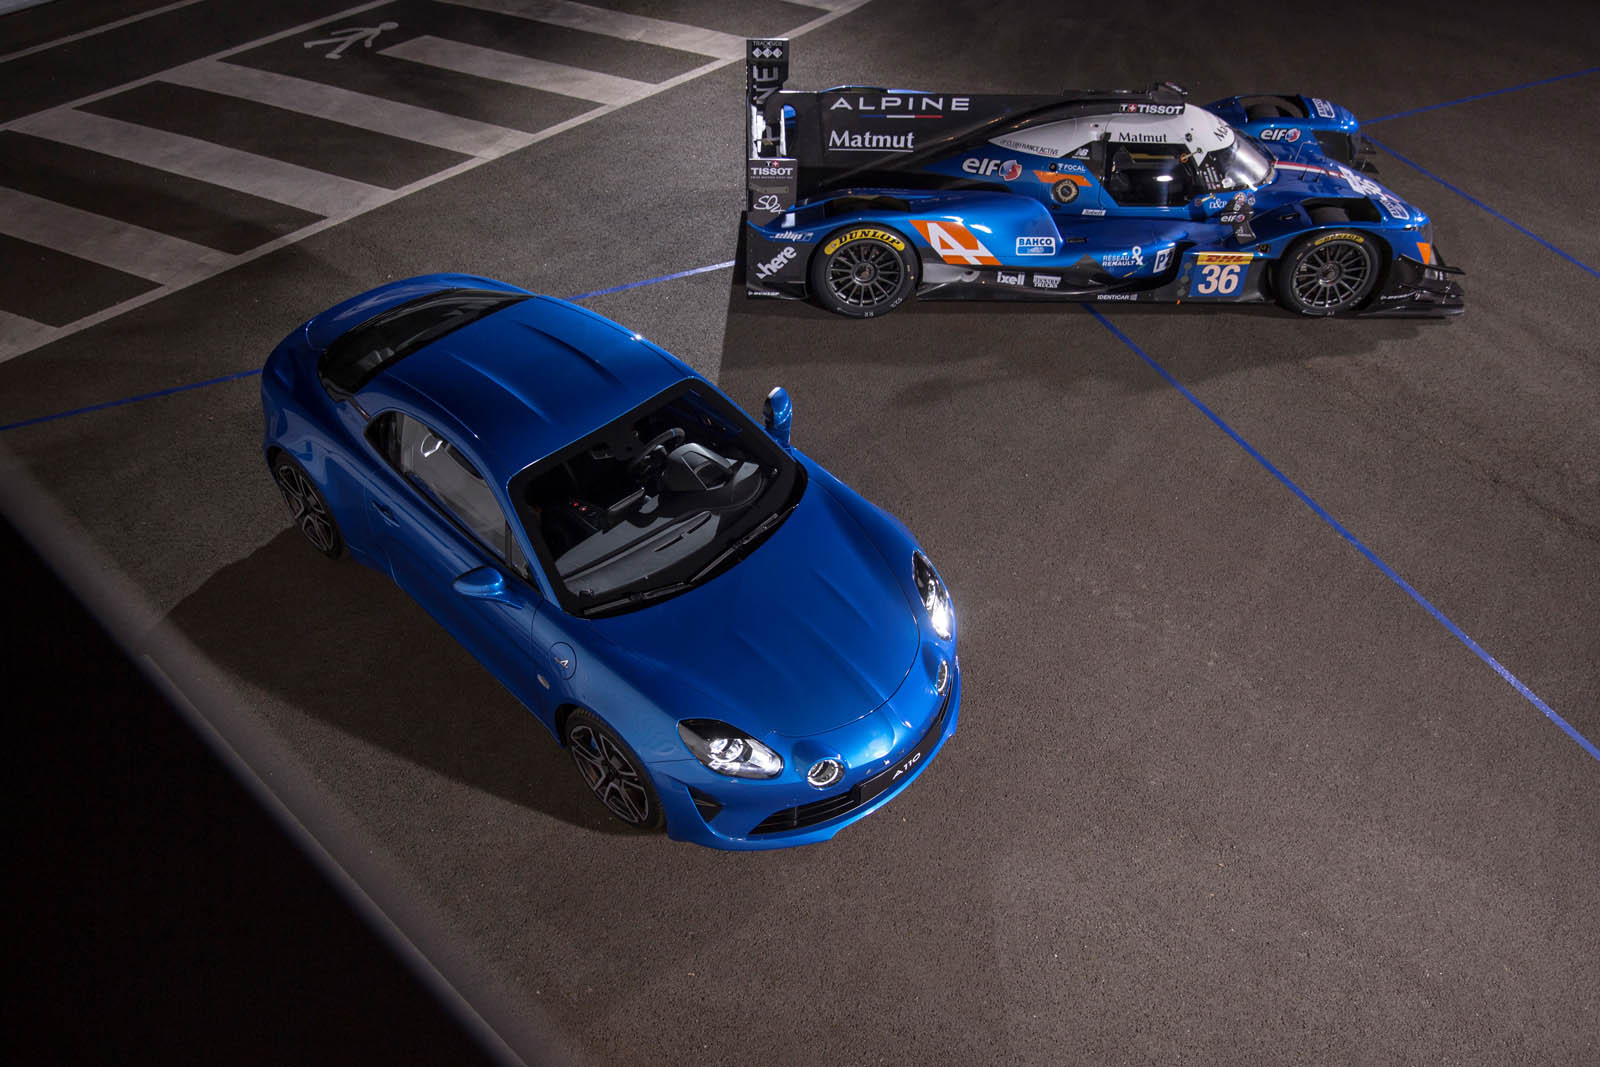 Alpine S New A470 Is Twice As Powerful As The A110 Carscoops